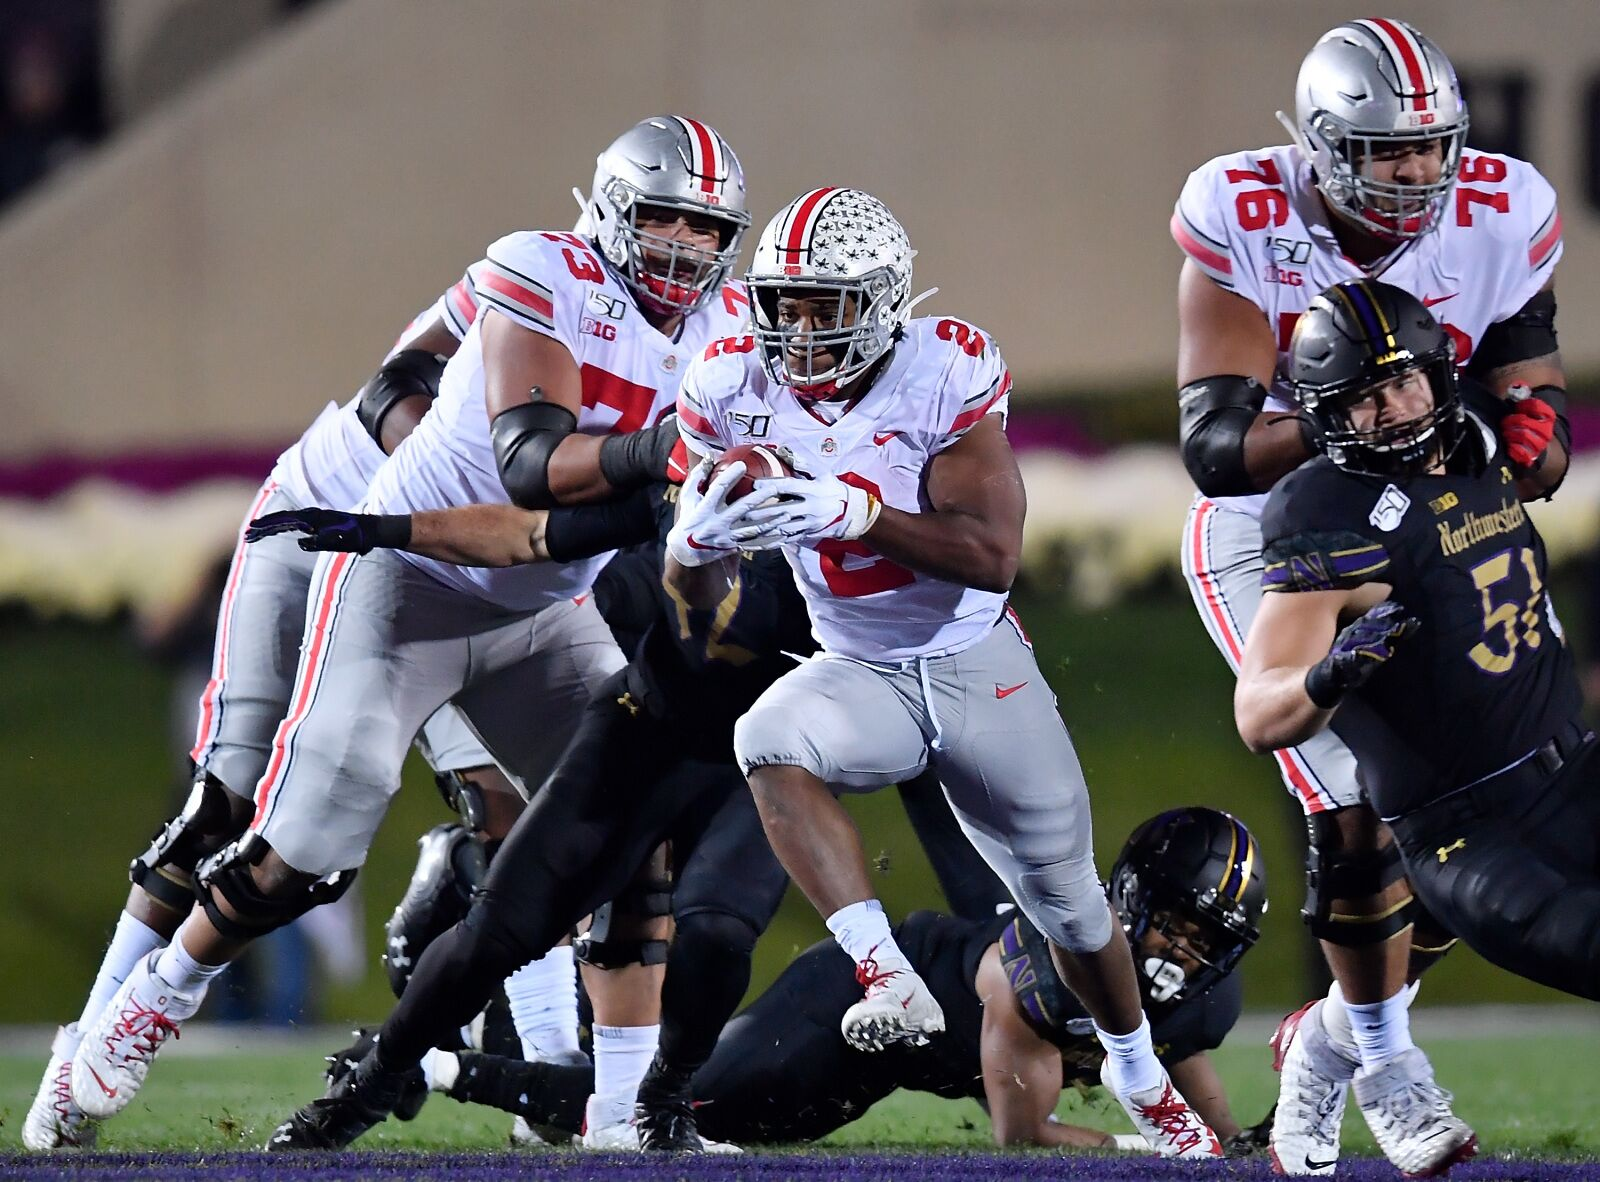 Ohio State Football: Dobbins could become Buckeyes' top career rusher